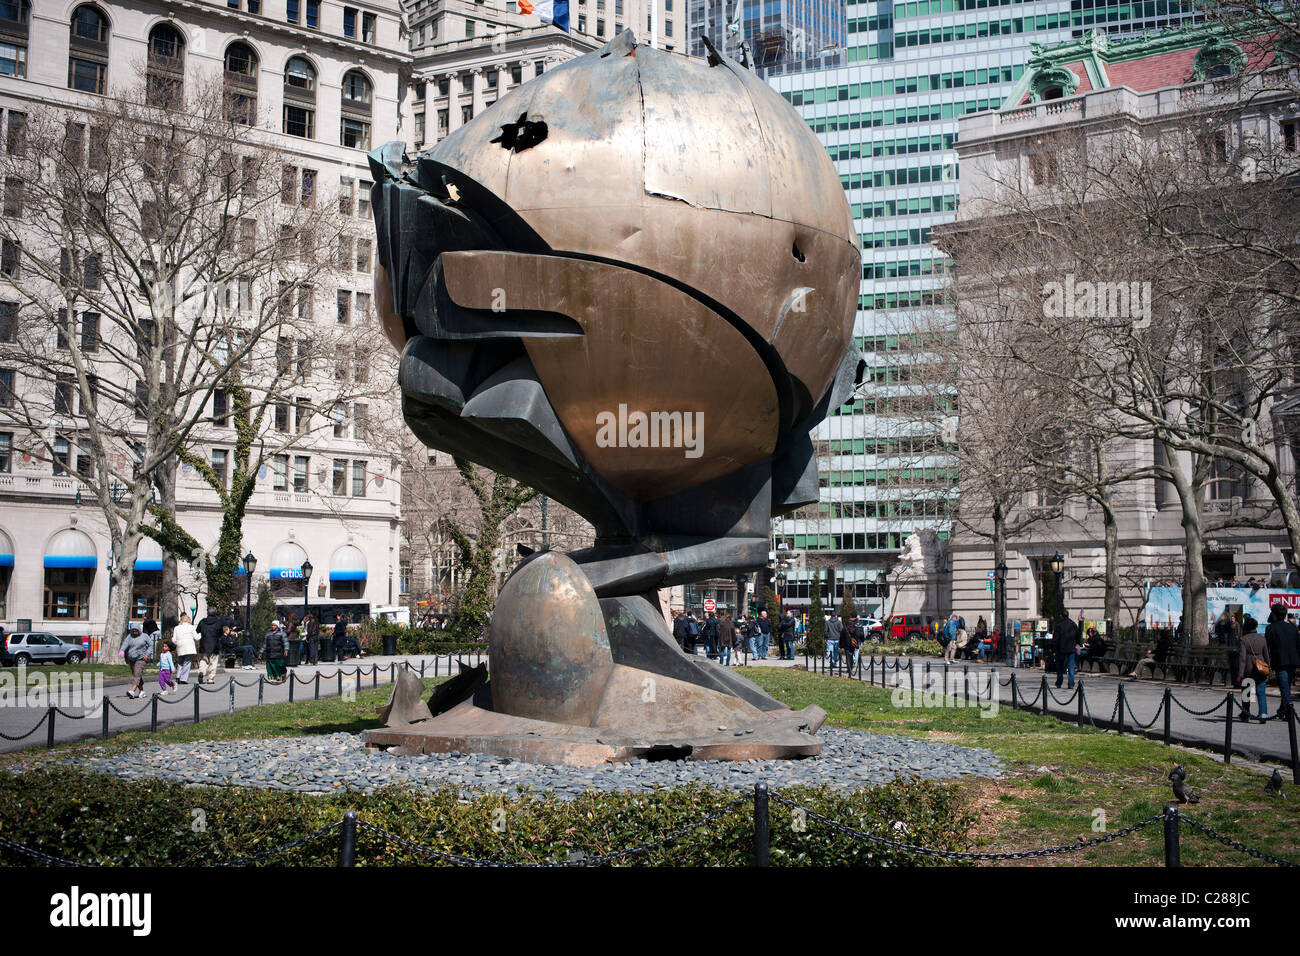 Visitors view 'Sphere' by the sculptor Fritz Koenig on Sunday, April 3, 2011 in Battery Park in New York - Stock Image